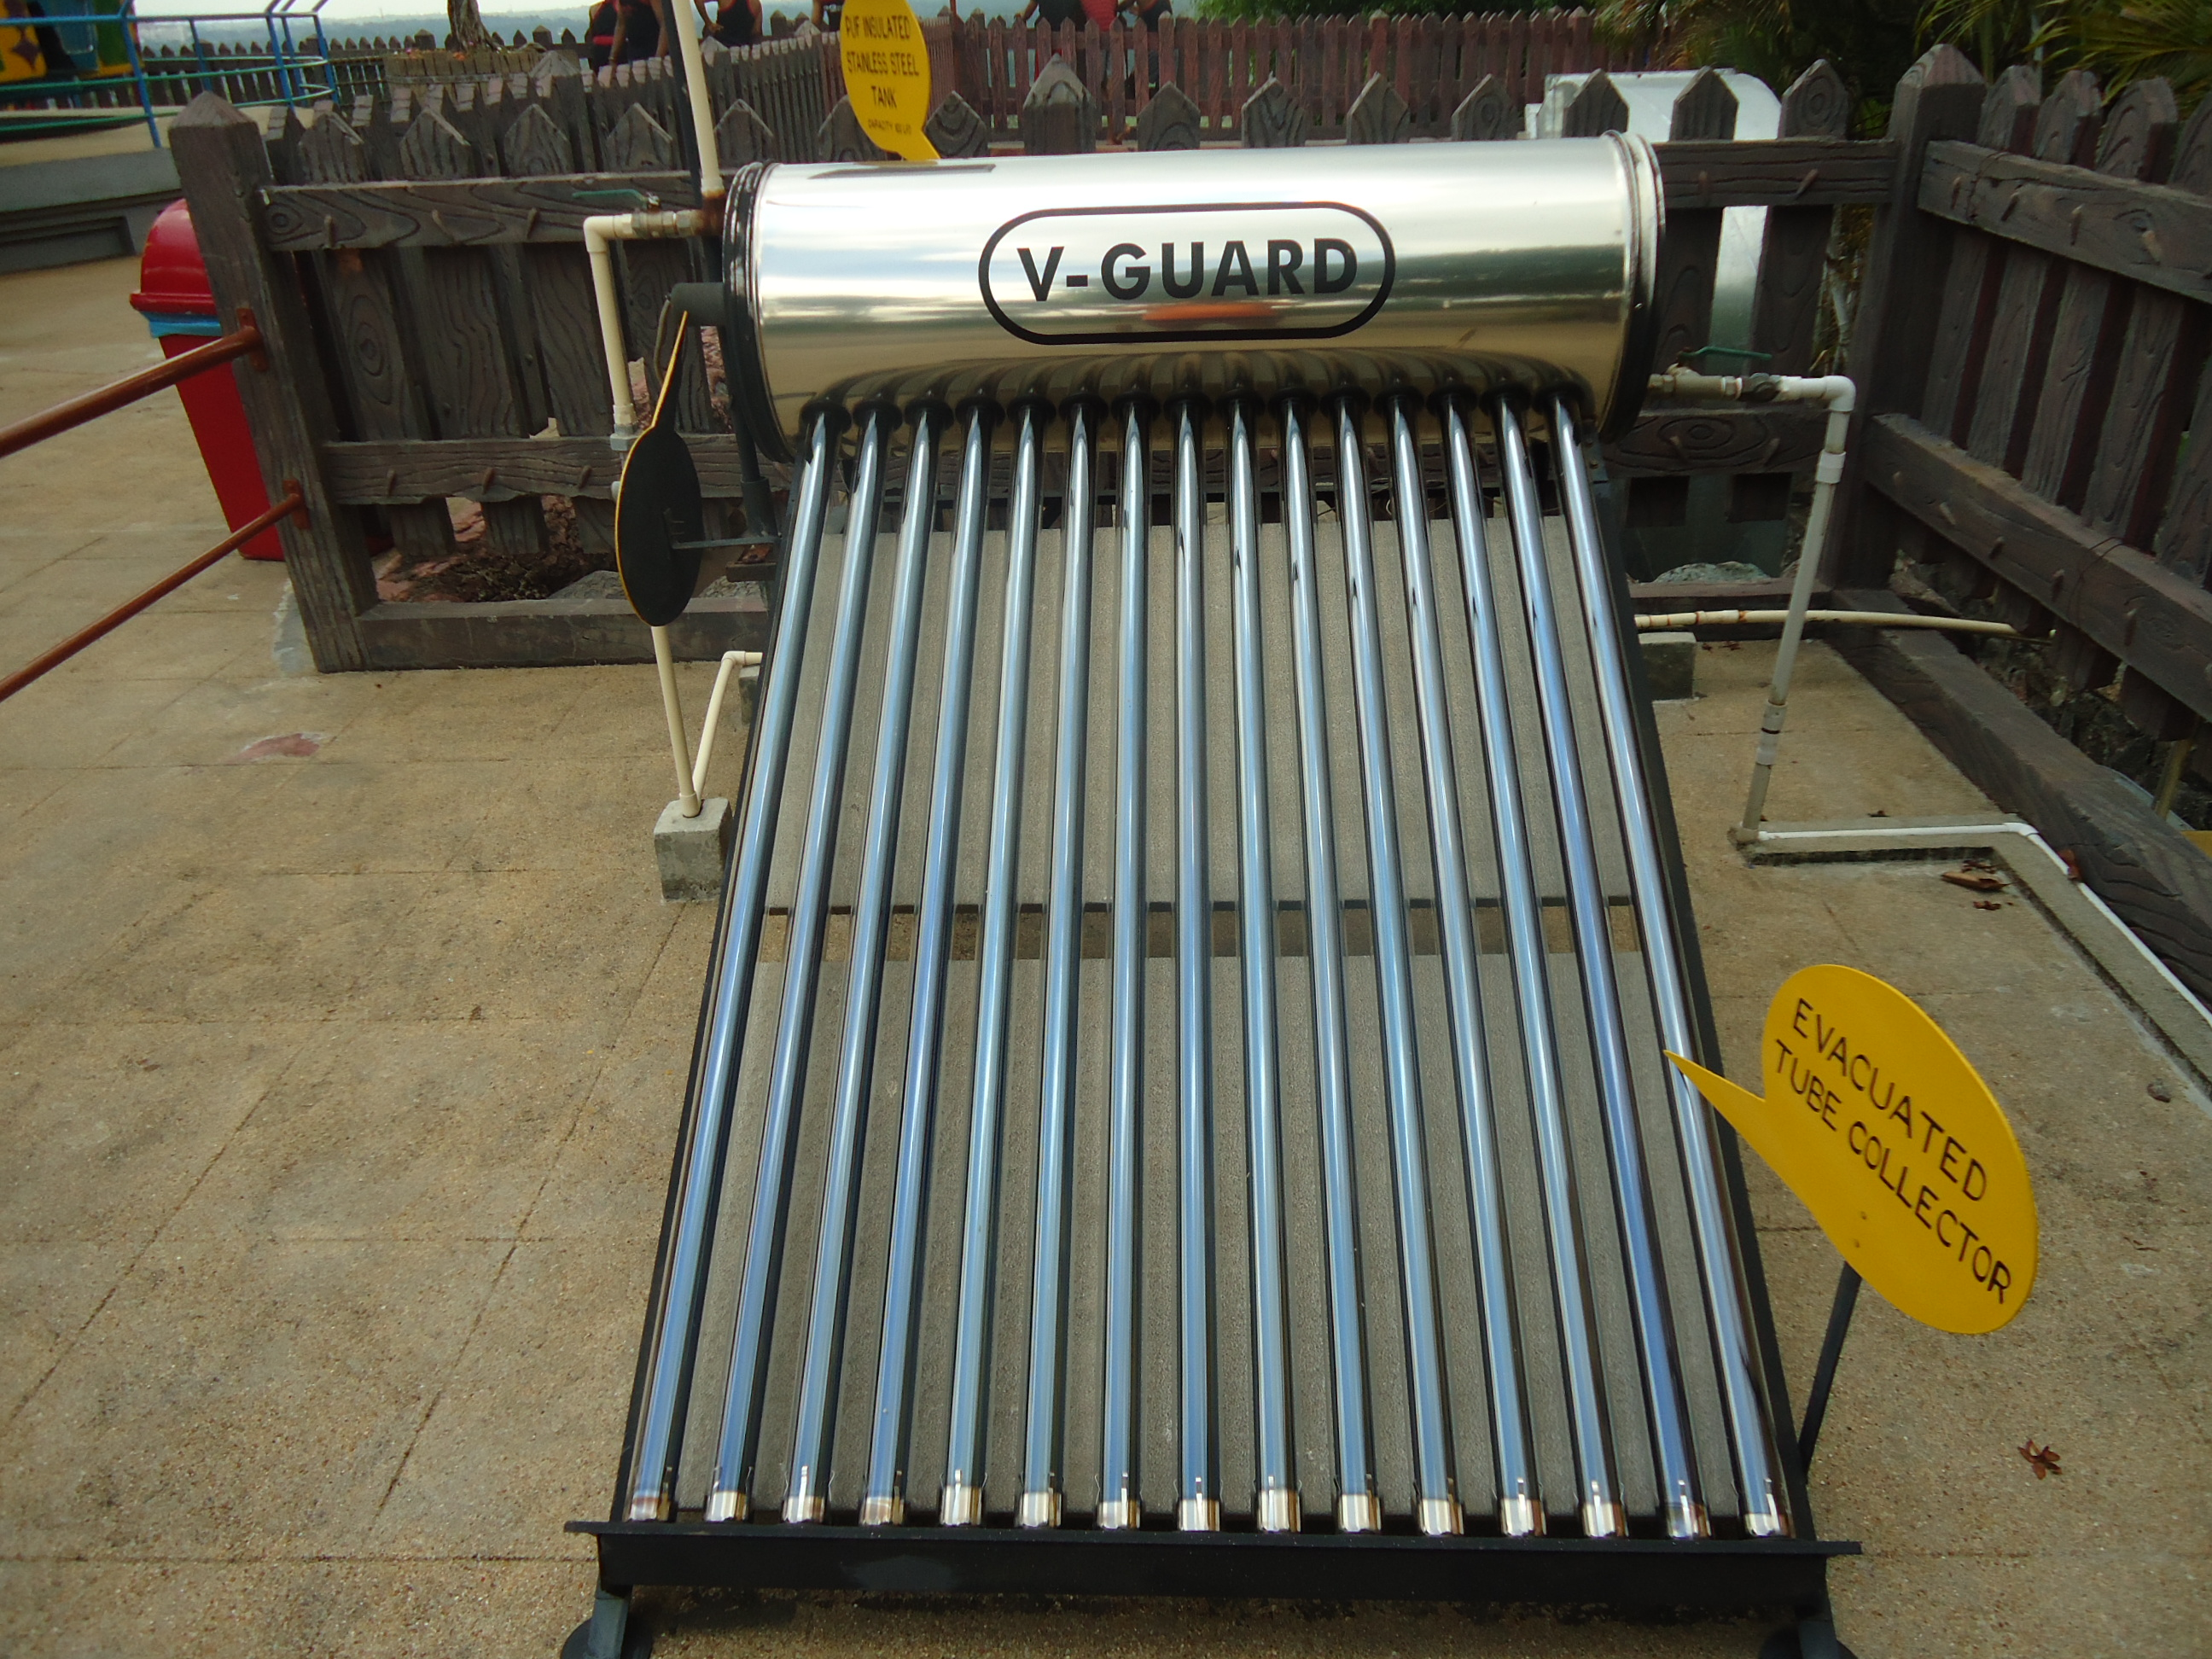 Installing Solar Water Heater At Home Ideas By Mr Right Diagram Free Collection Of Pictures The